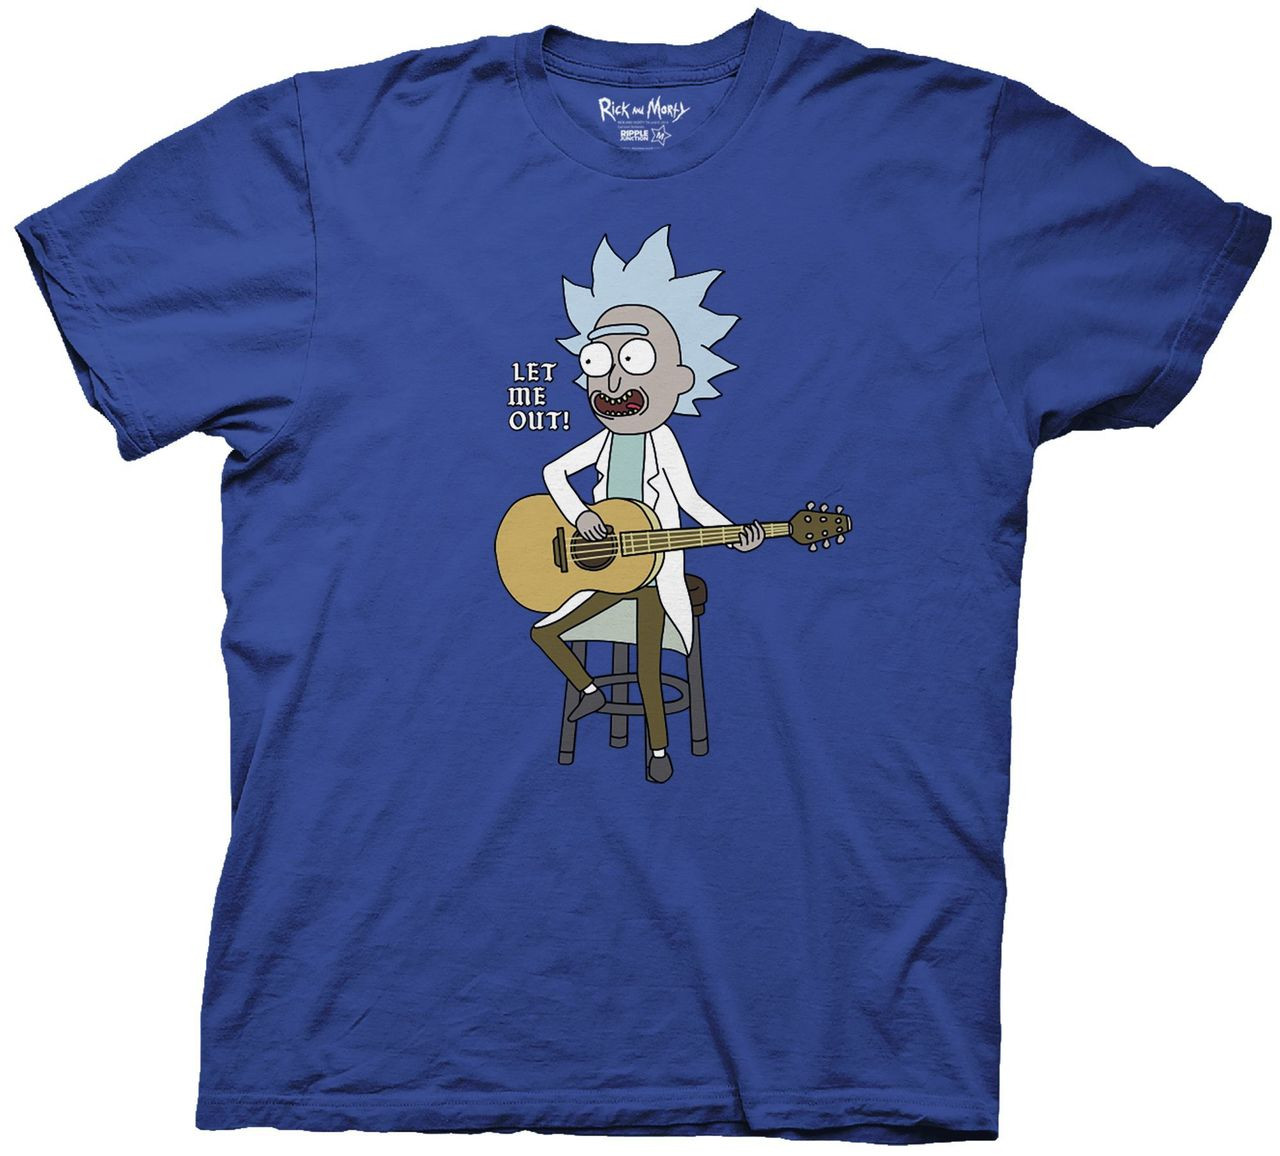 1c9ec498 Rick and Morty T-Shirt - Let Me Out Tiny Rick. Loading zoom. Hover over  image to zoom